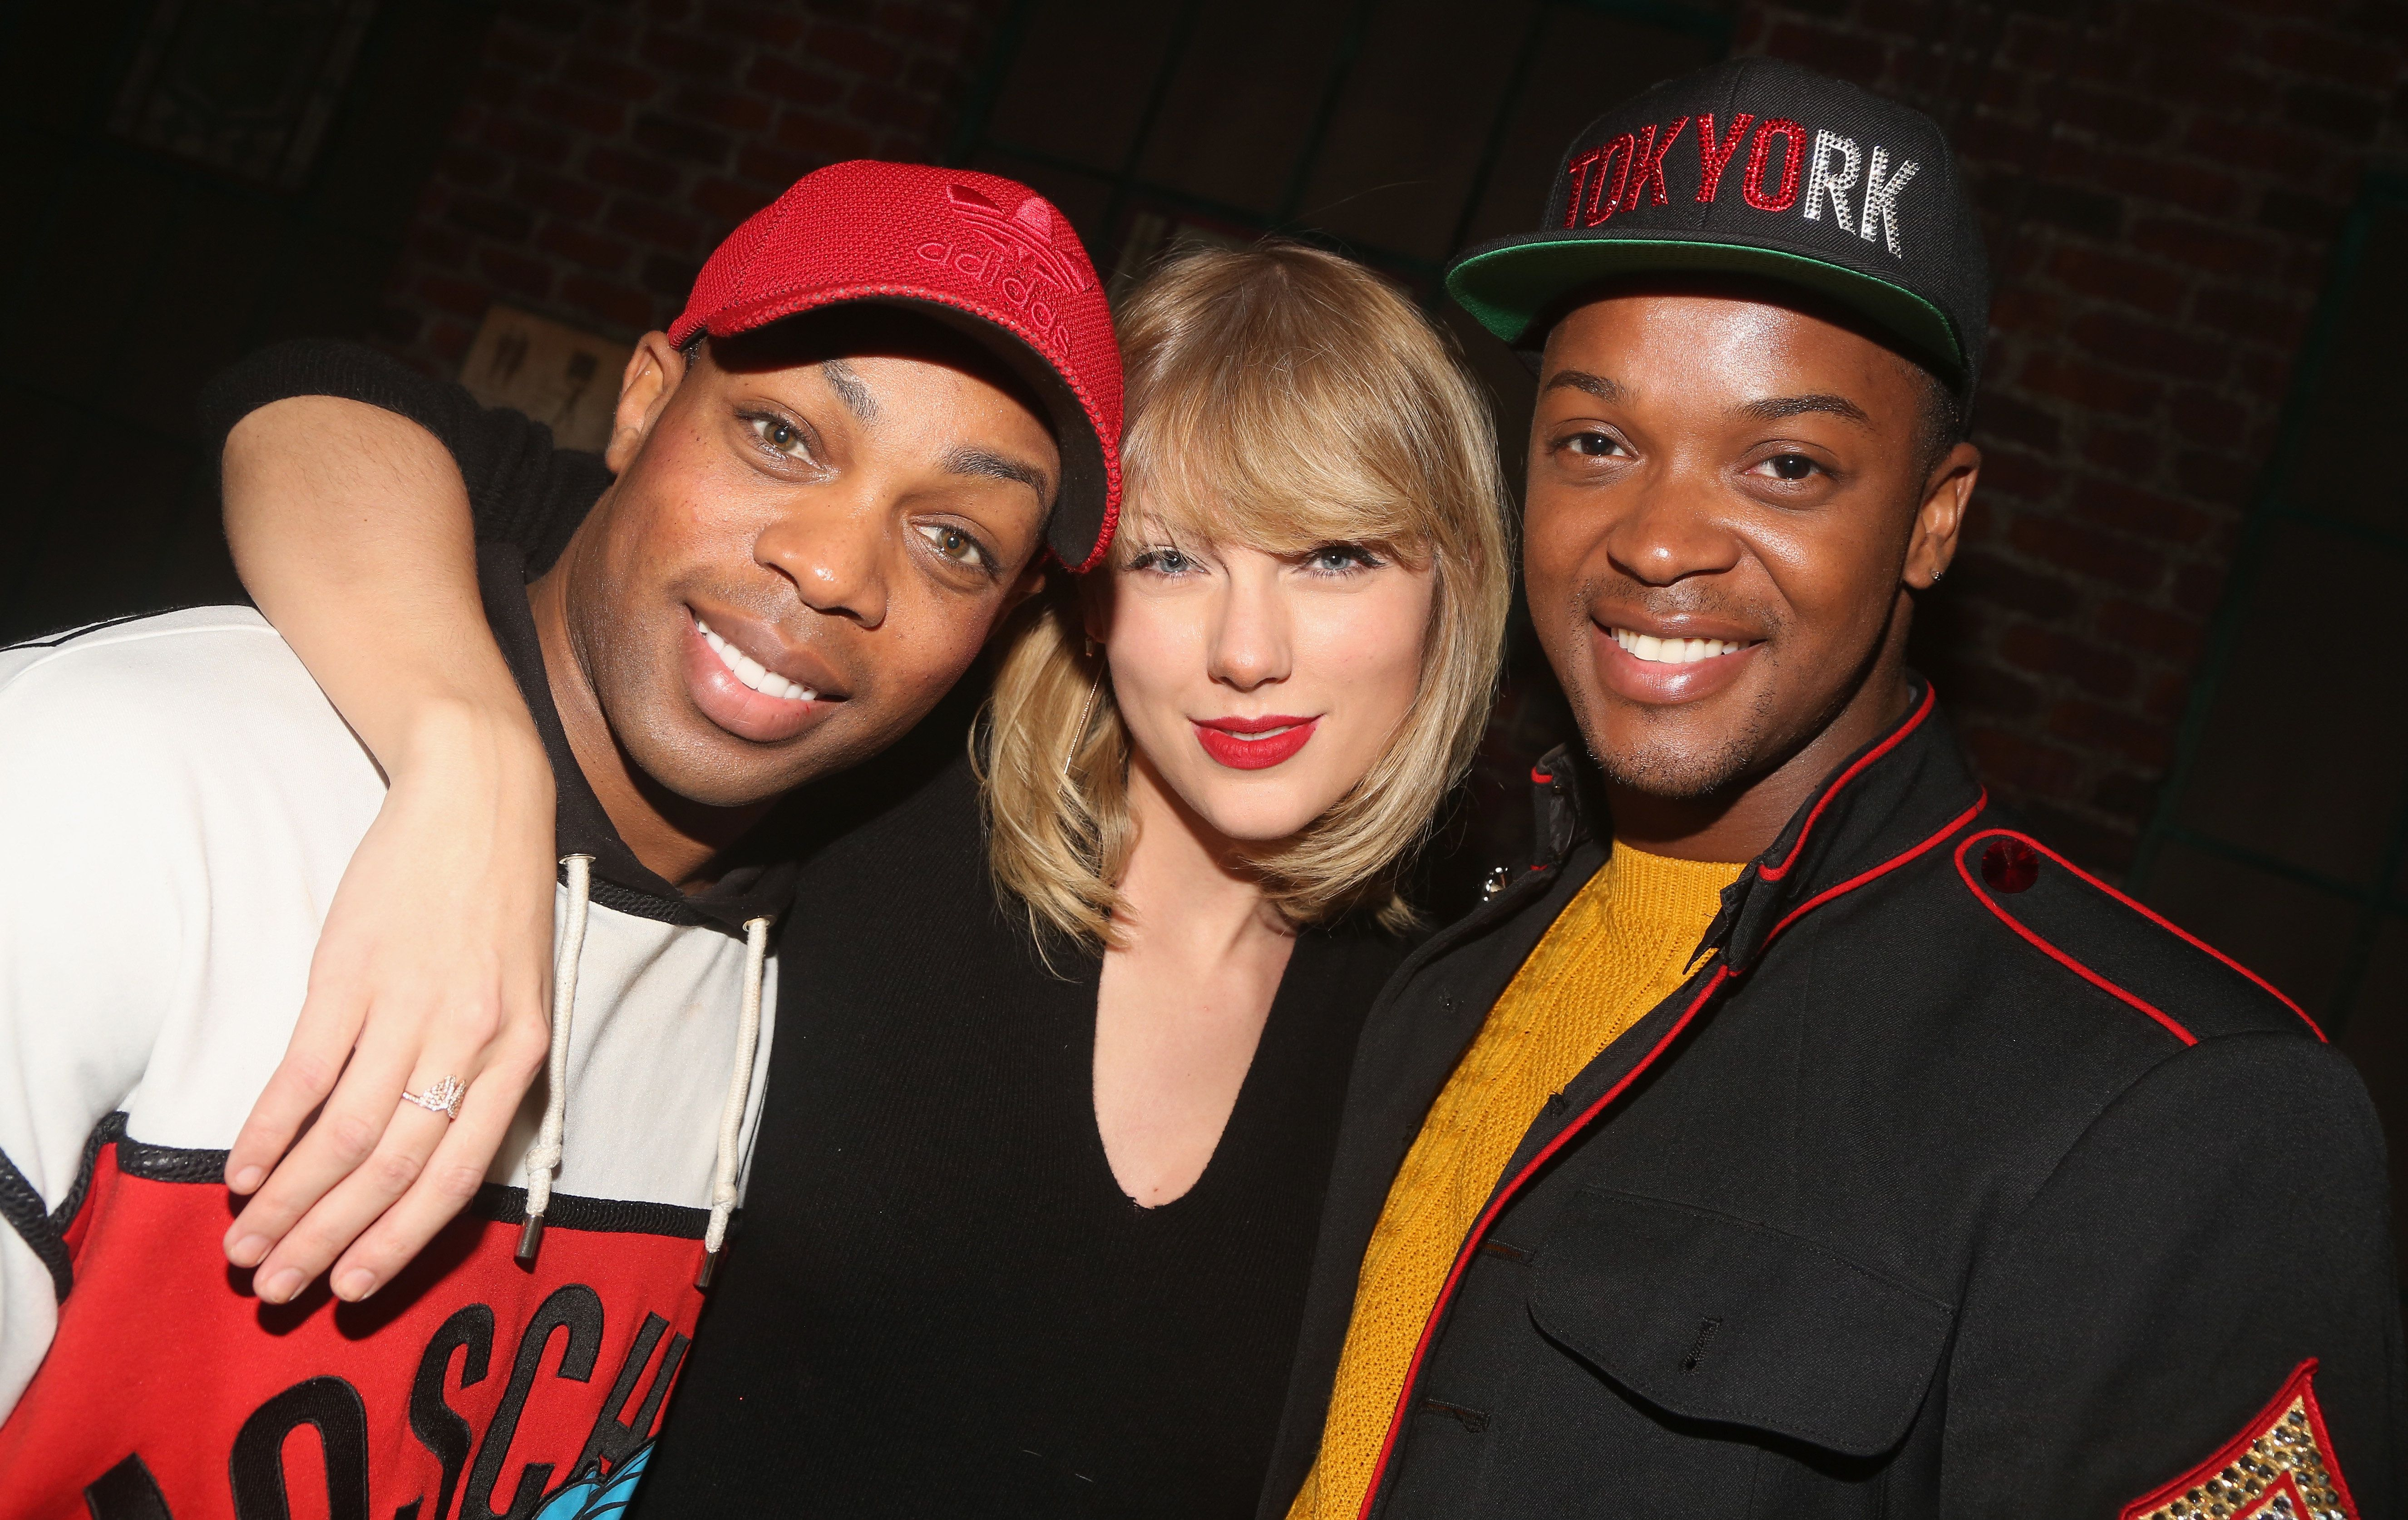 NEW YORK, NY - NOVEMBER 23:  (EXCLUSIVE COVERAGE) (L-R) Todrick Hal (Broadway's 'Lola')l, Taylor Swift and Harrison Ghee (The National Tour's 'Lola') pose backstage at the hit musical 'Kinky Boots' on Broadway at The Al Hirschfeld Theater on November 23, 2016 in New York City.  (Photo by Bruce Glikas/Bruce Glikas/Getty Images)